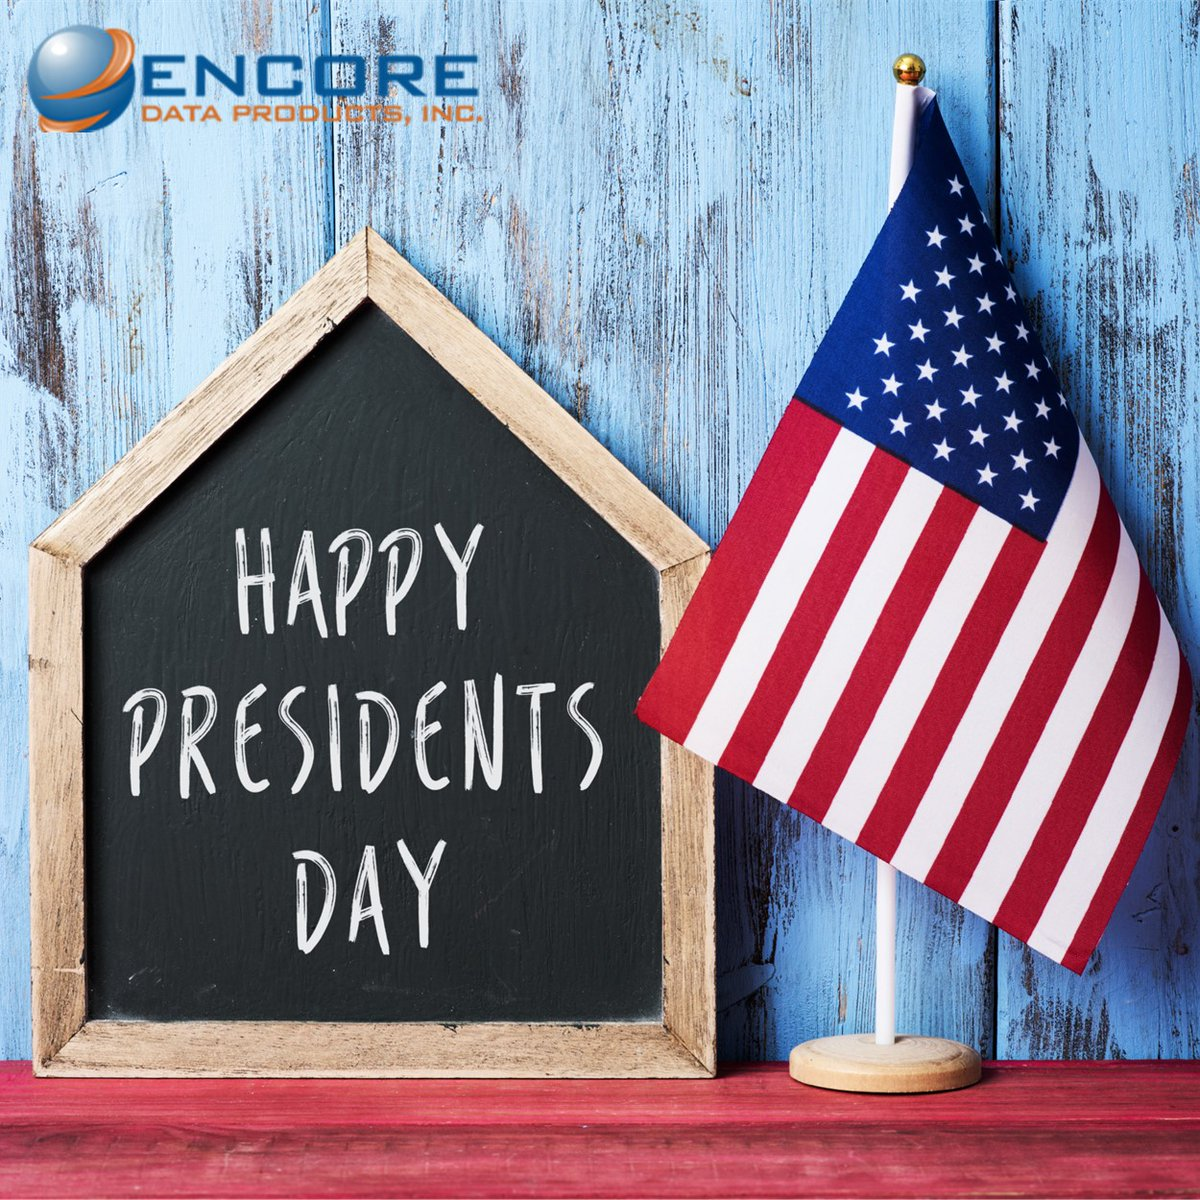 Presidents' Day, officially Washington's Birthday in the United States, was later recognized as honoring George Washington and Abraham Lincoln. Currently, the holiday celebrates the birthdays and lives of ALL U.S. presidents. A national day to be celebrated! https://t.co/wtaHogSOln